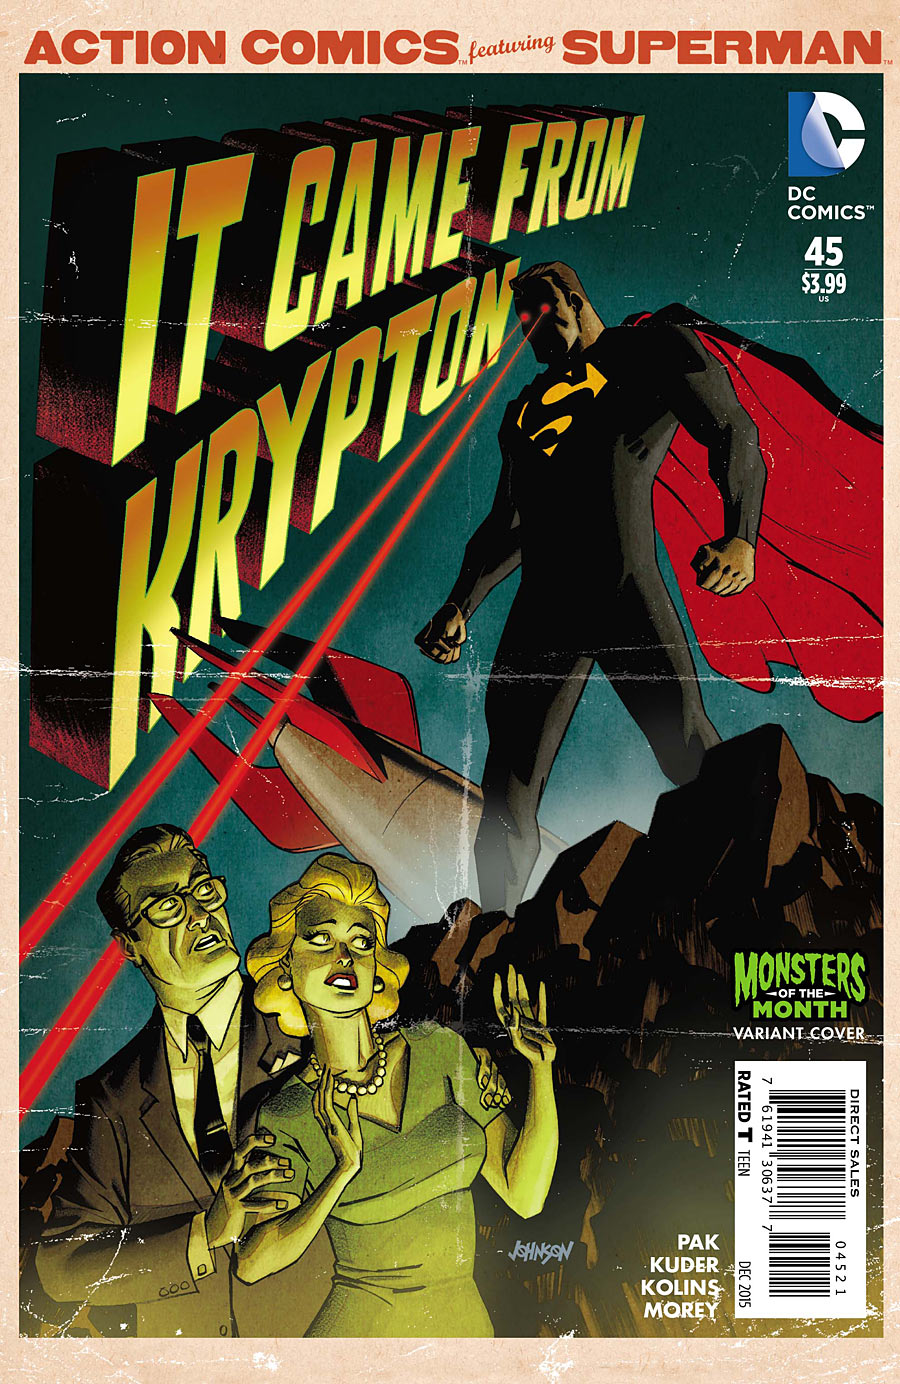 Action Comics Vol 2 45 Monsters of the Month Variant.jpg